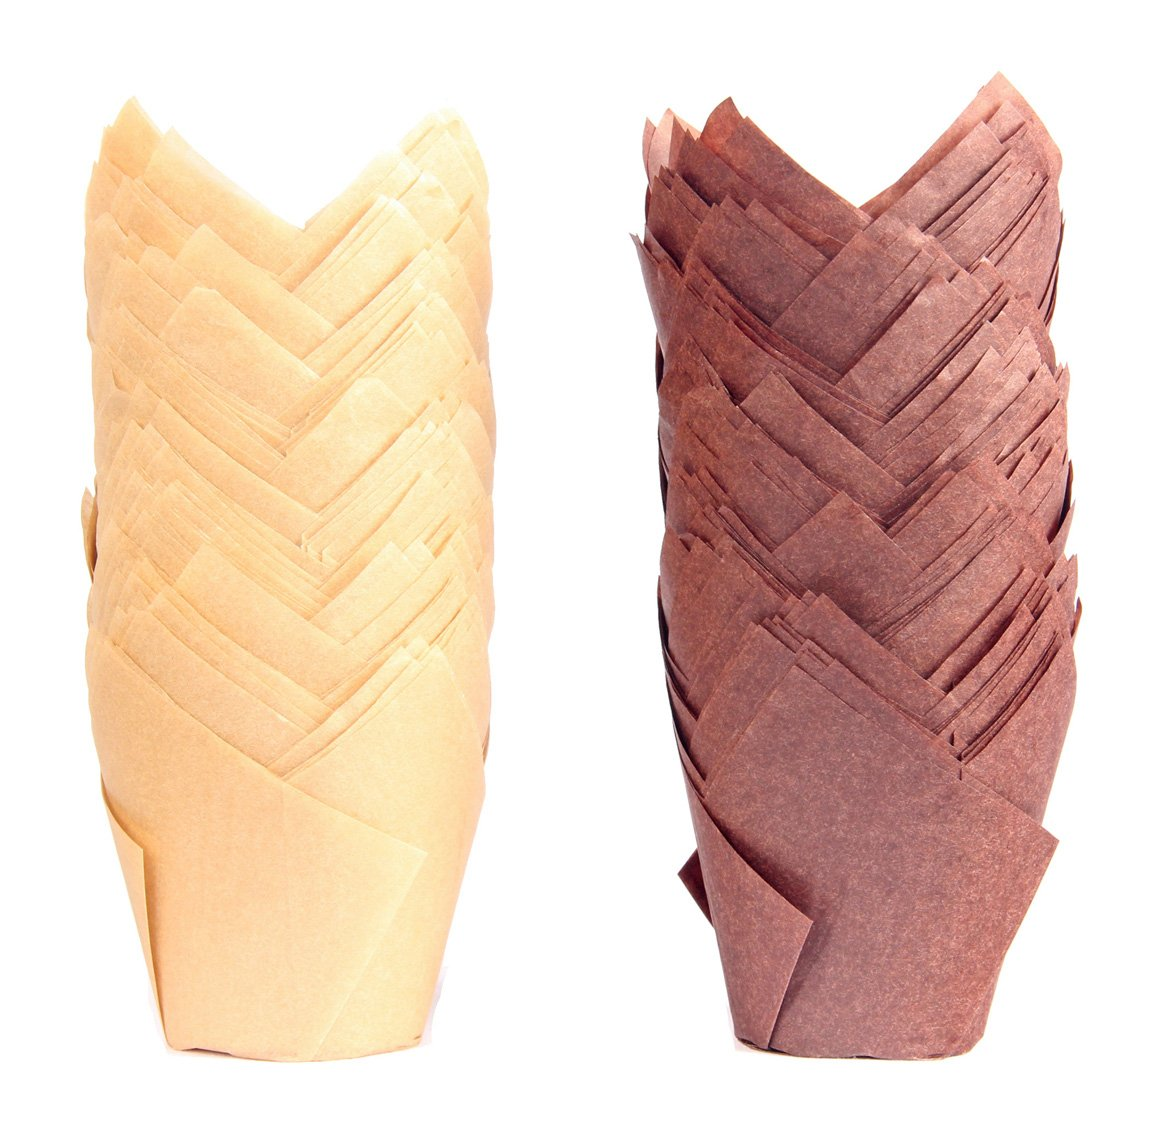 200-pack tulip cupcake muffin liners wrappers mini baking paper cups-natural-brown&burgundy by YallFairy